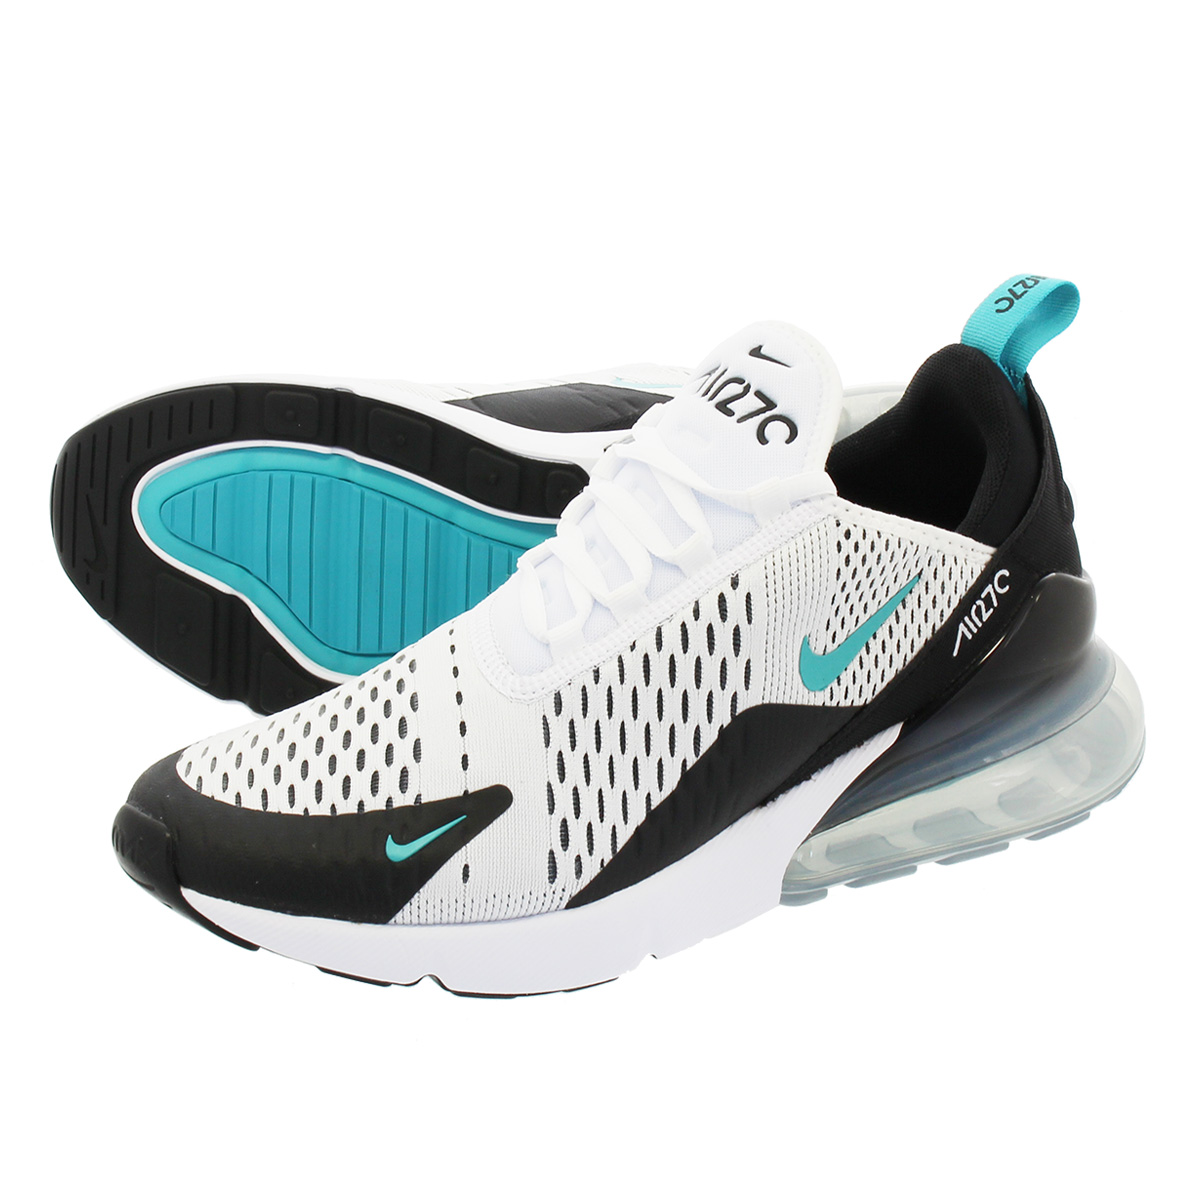 separation shoes e4b0f a63f7 NIKE AIR MAX 270 Kie Ney AMAX 270 WHITE/DUSTY CACTUS/BLACK ah8050-001